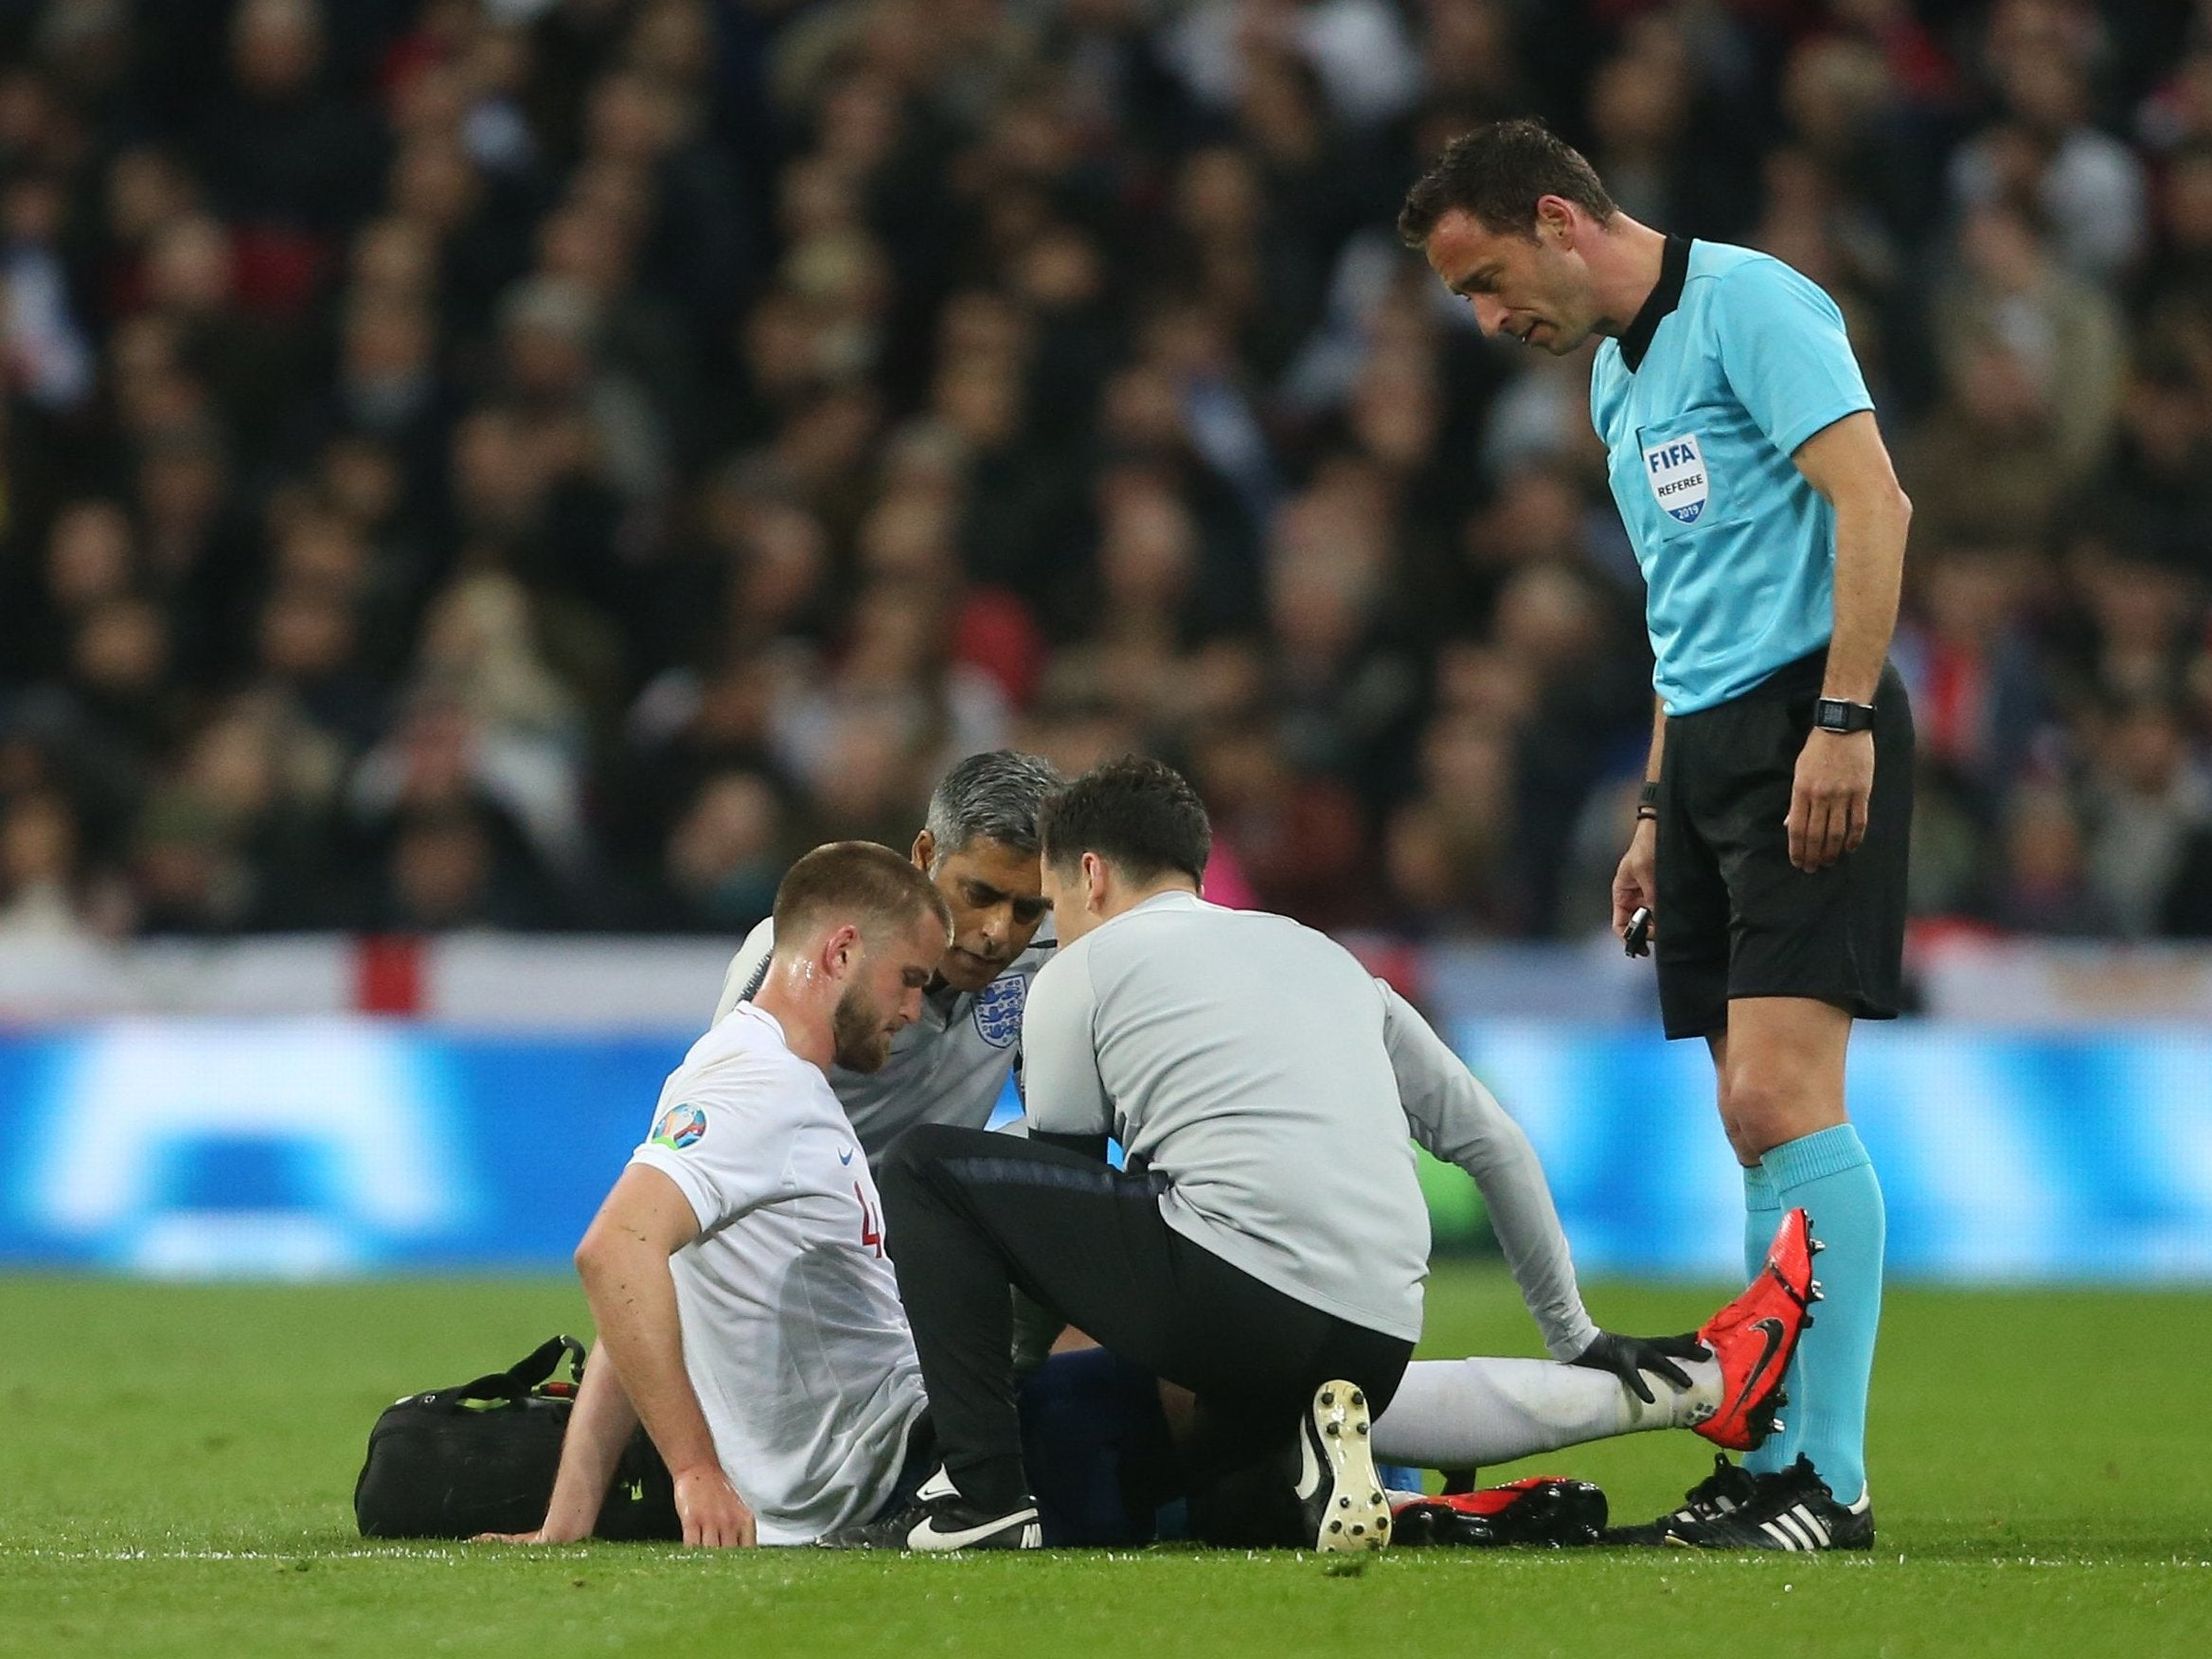 Eric Dier - latest news, breaking stories and comment - The Independent